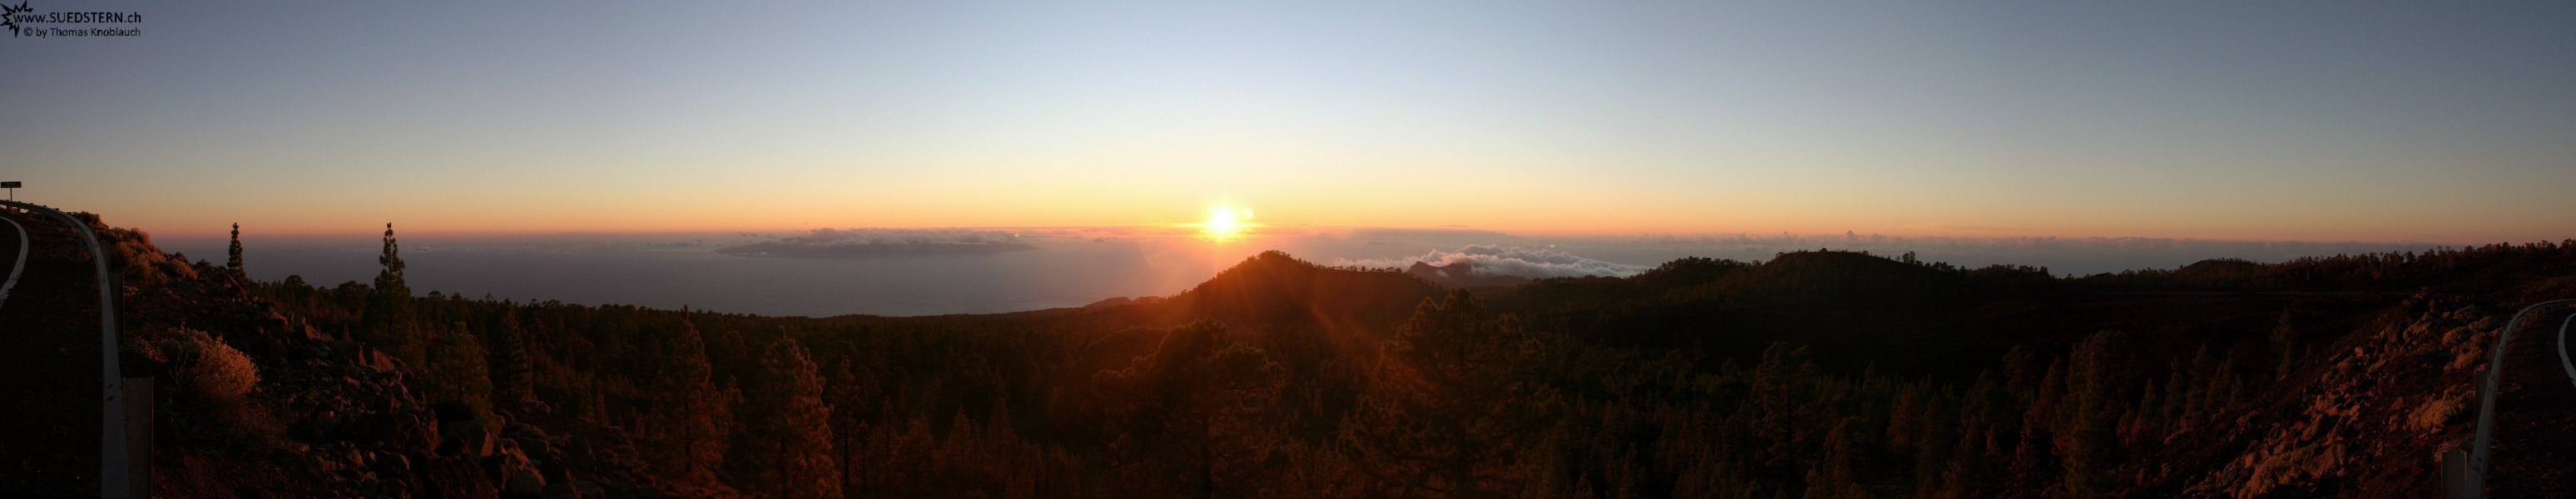 2007-09-05 - 10 - Teneriffa, sundown at westseide of Teide Caldera